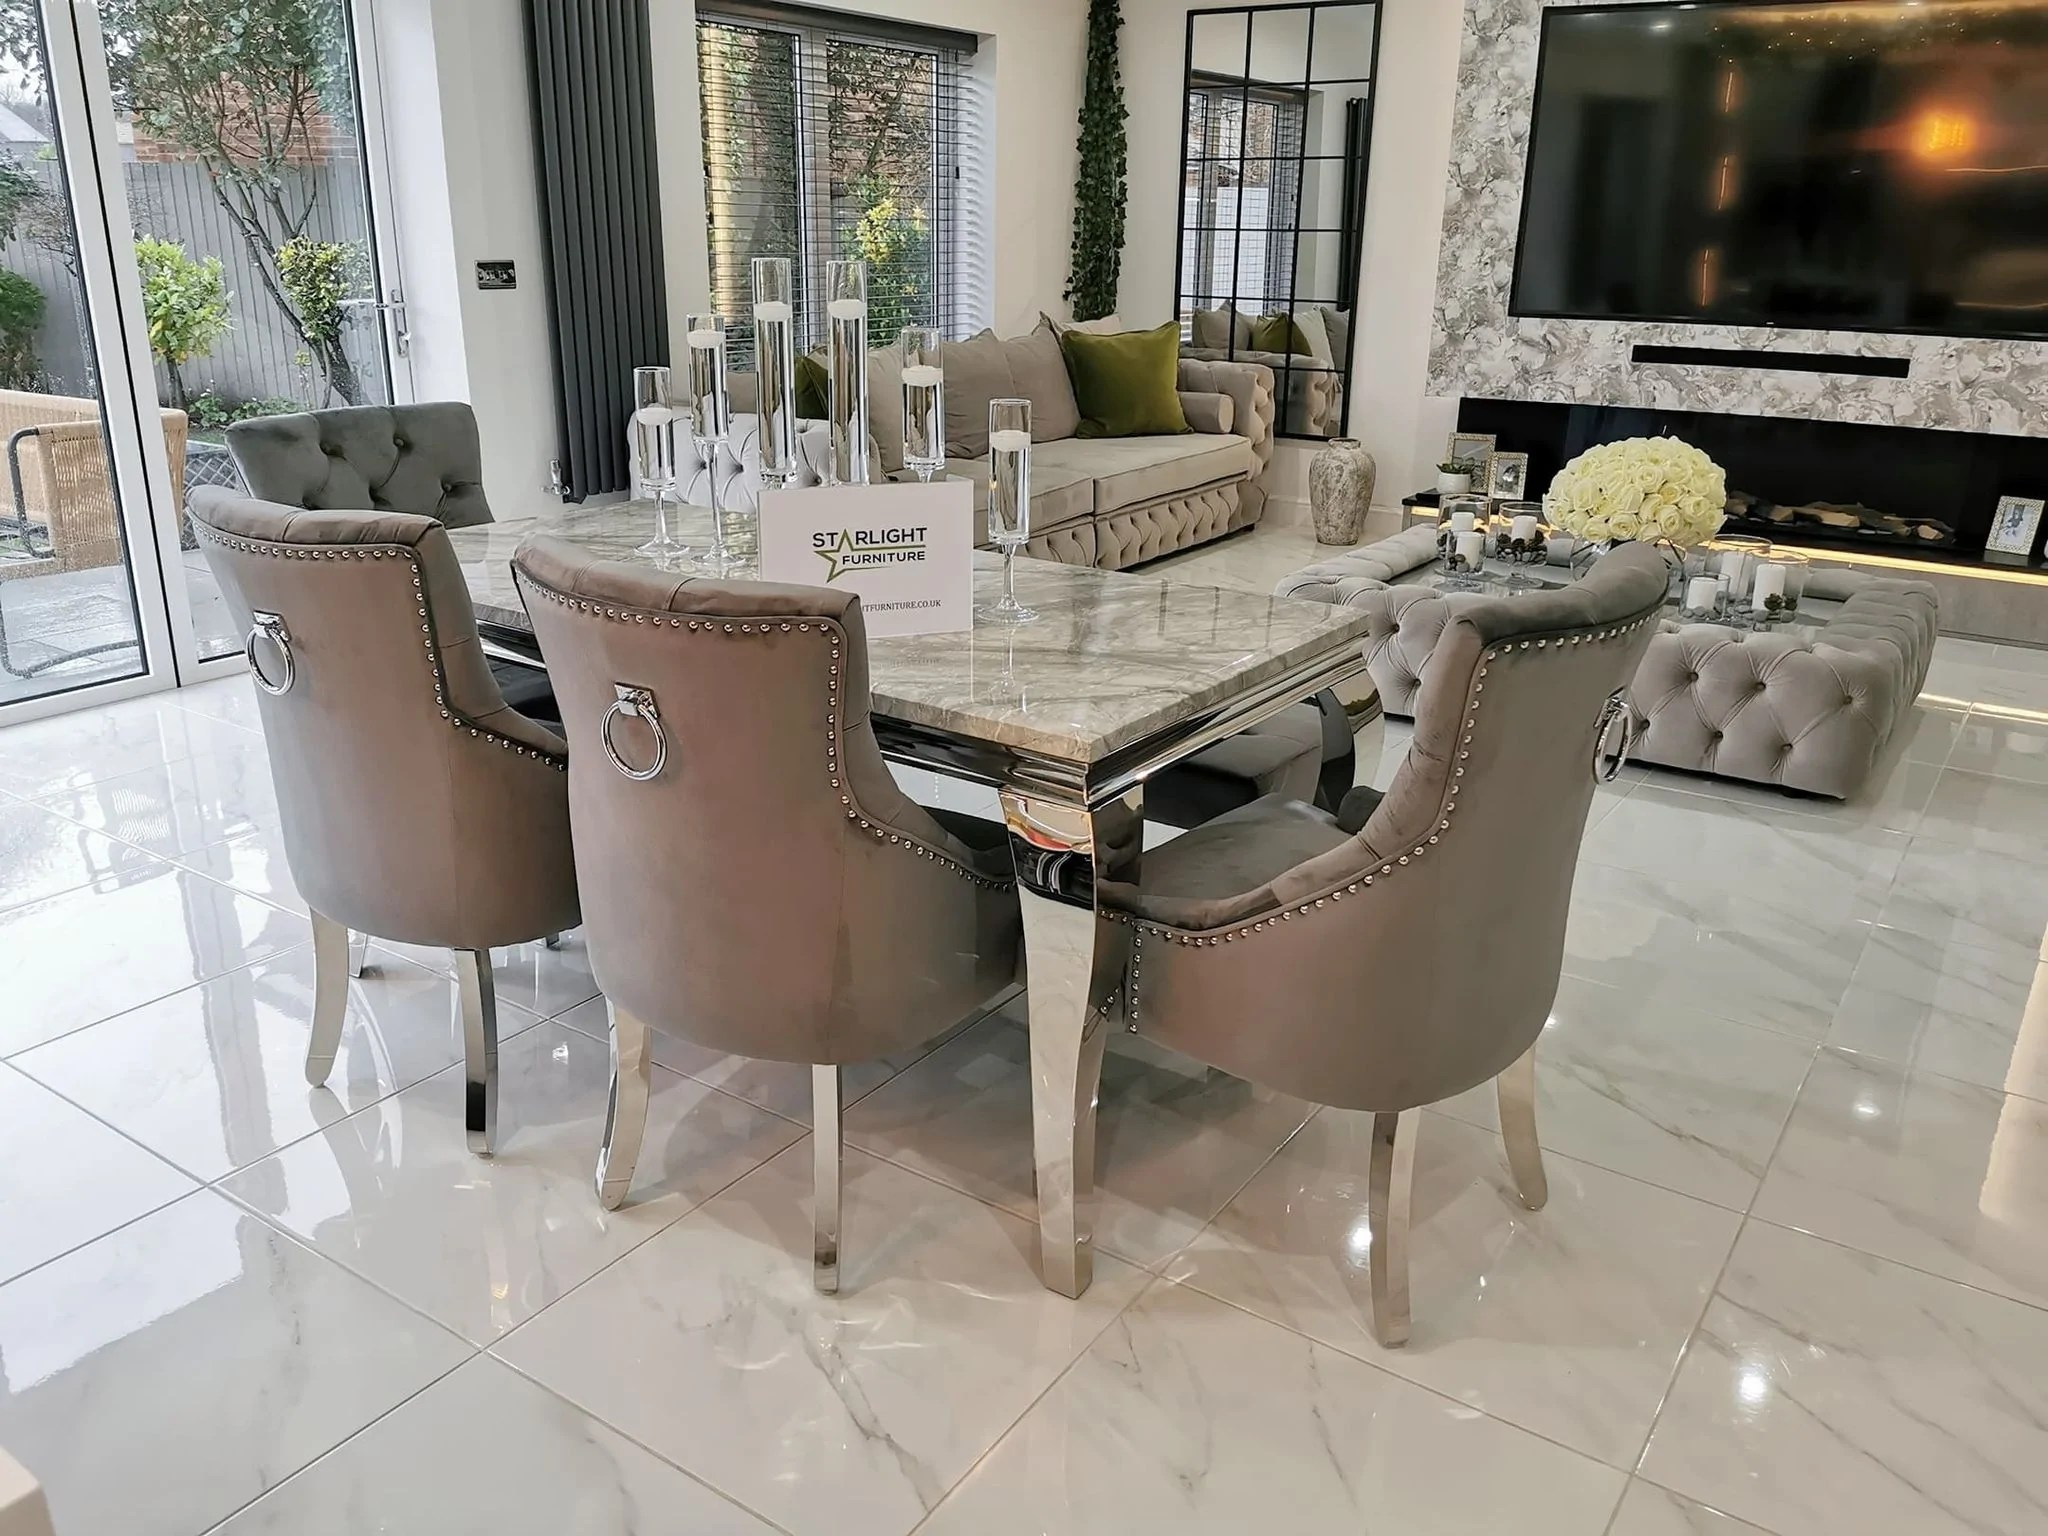 trafalgar rectangle marble dining table set with bull ring knockerback chairs